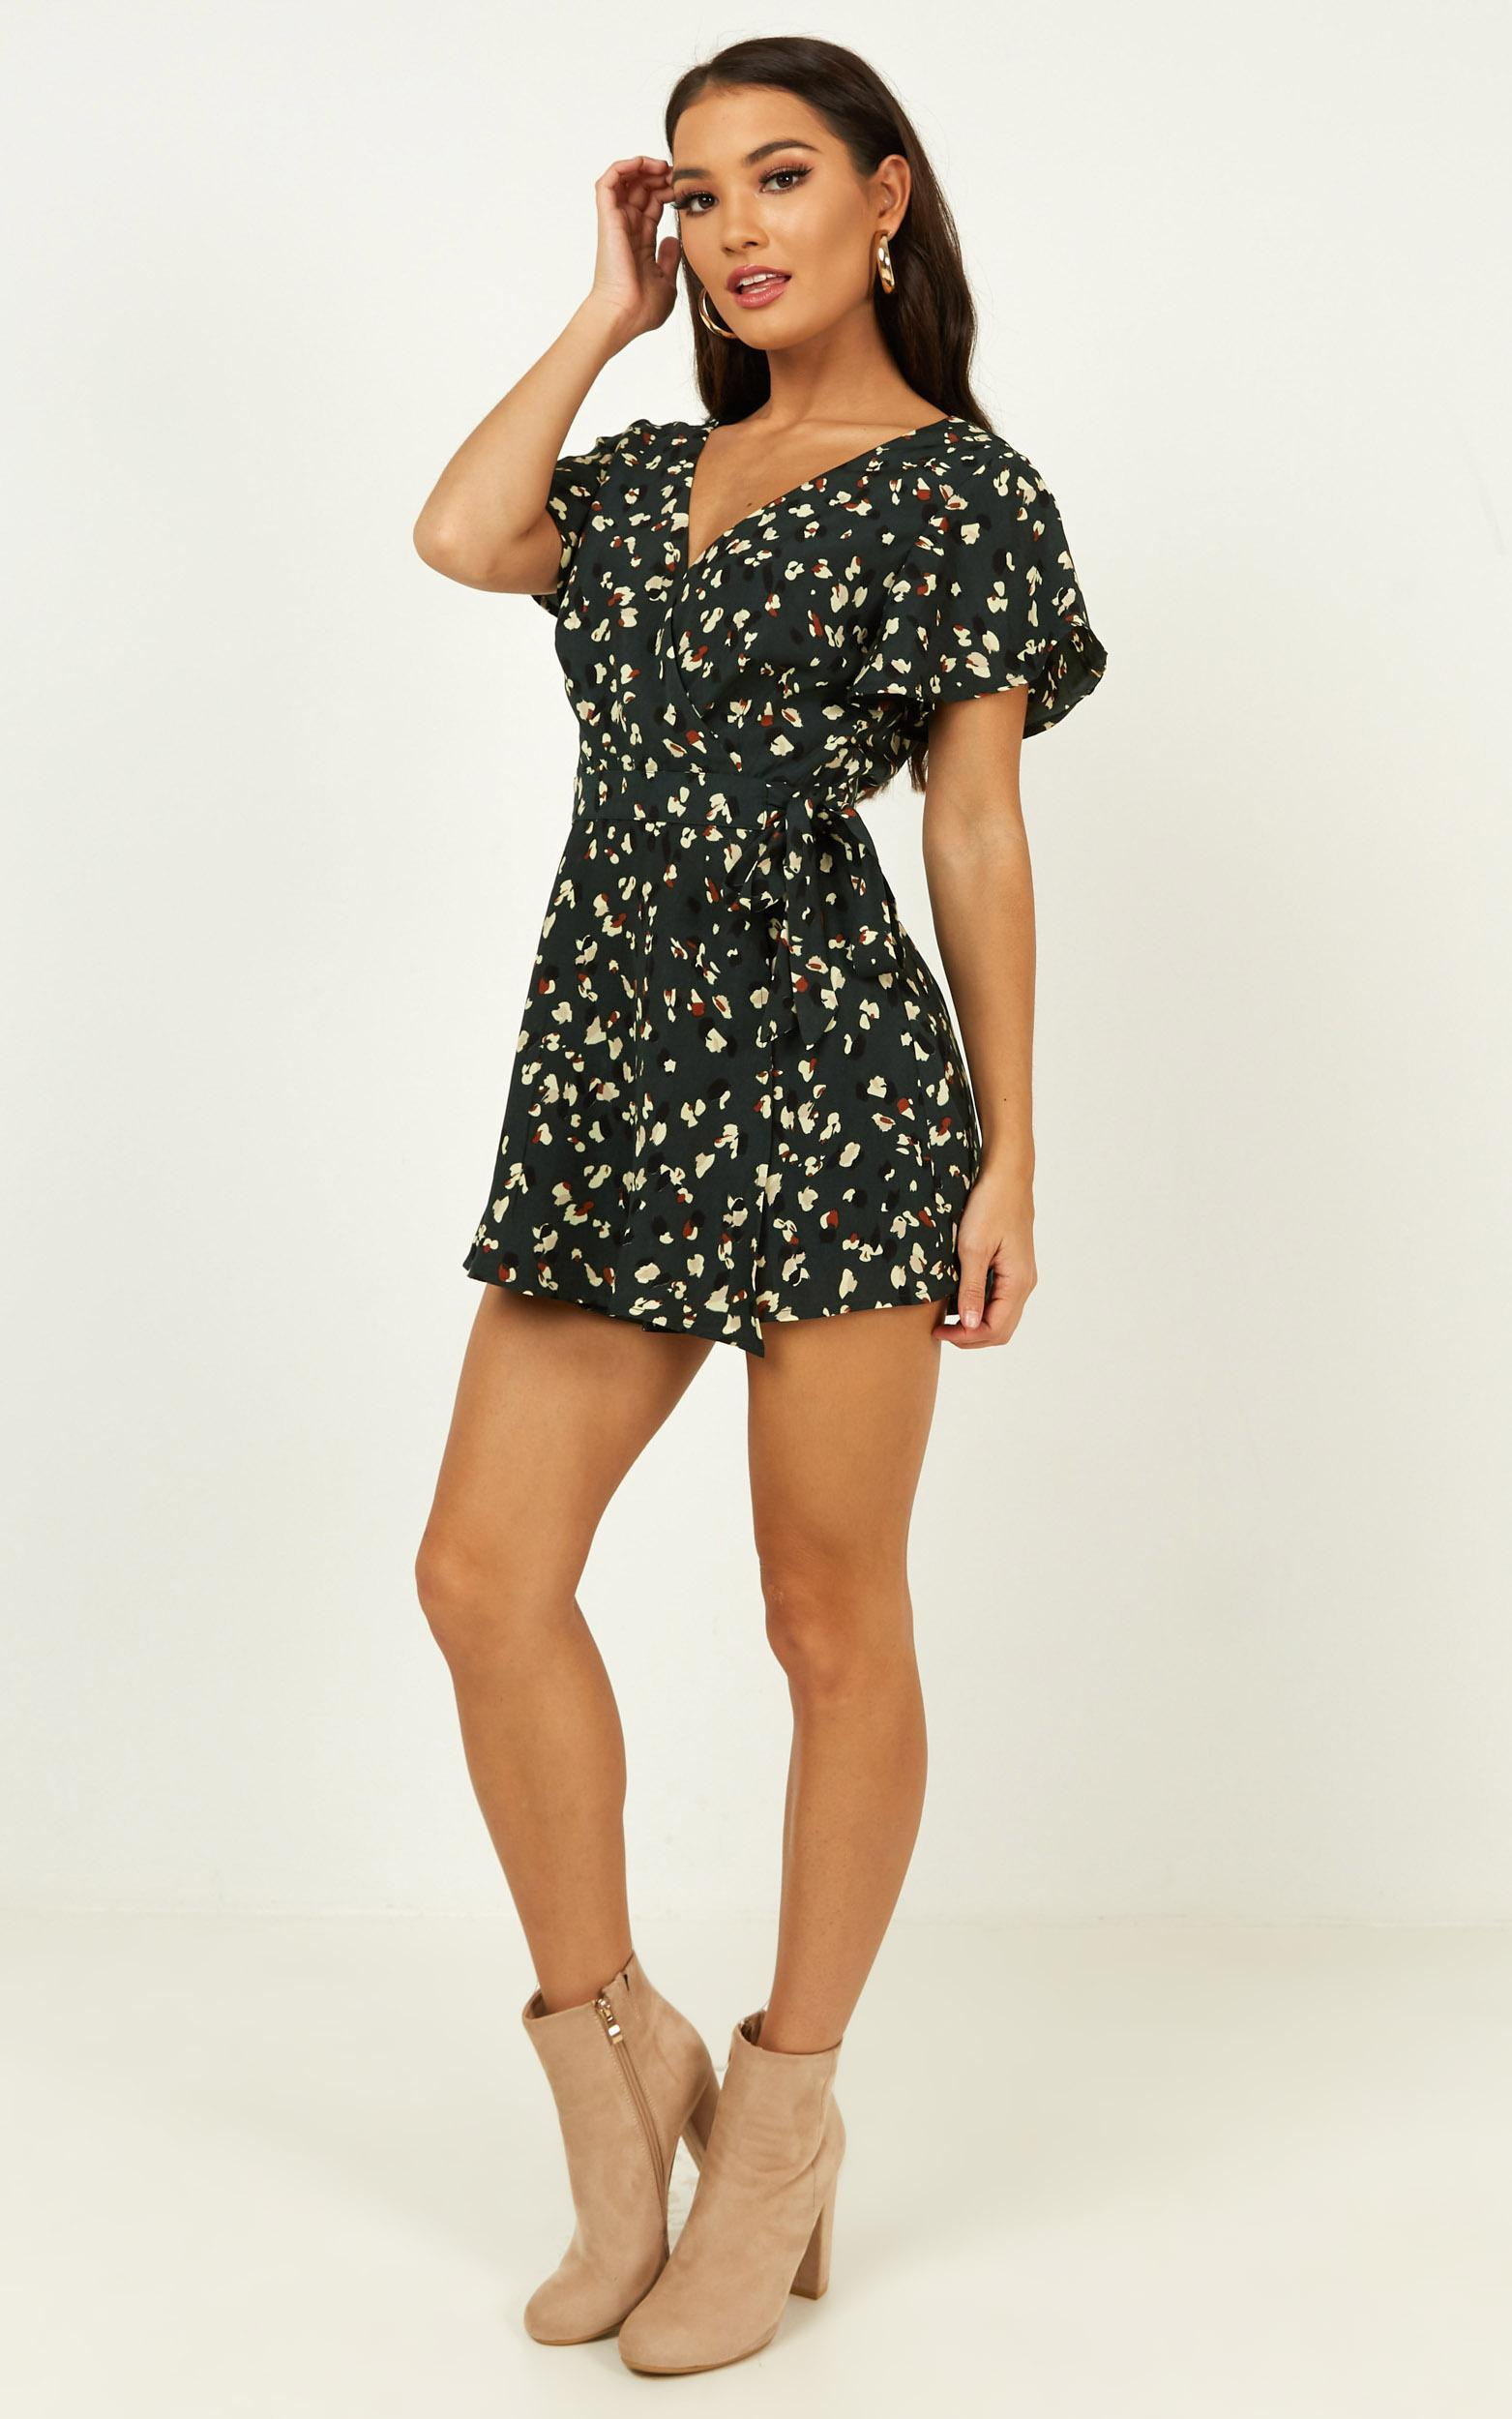 Gazey Eyes Playsuit in forest green leopard print - 12 (L), Green, hi-res image number null